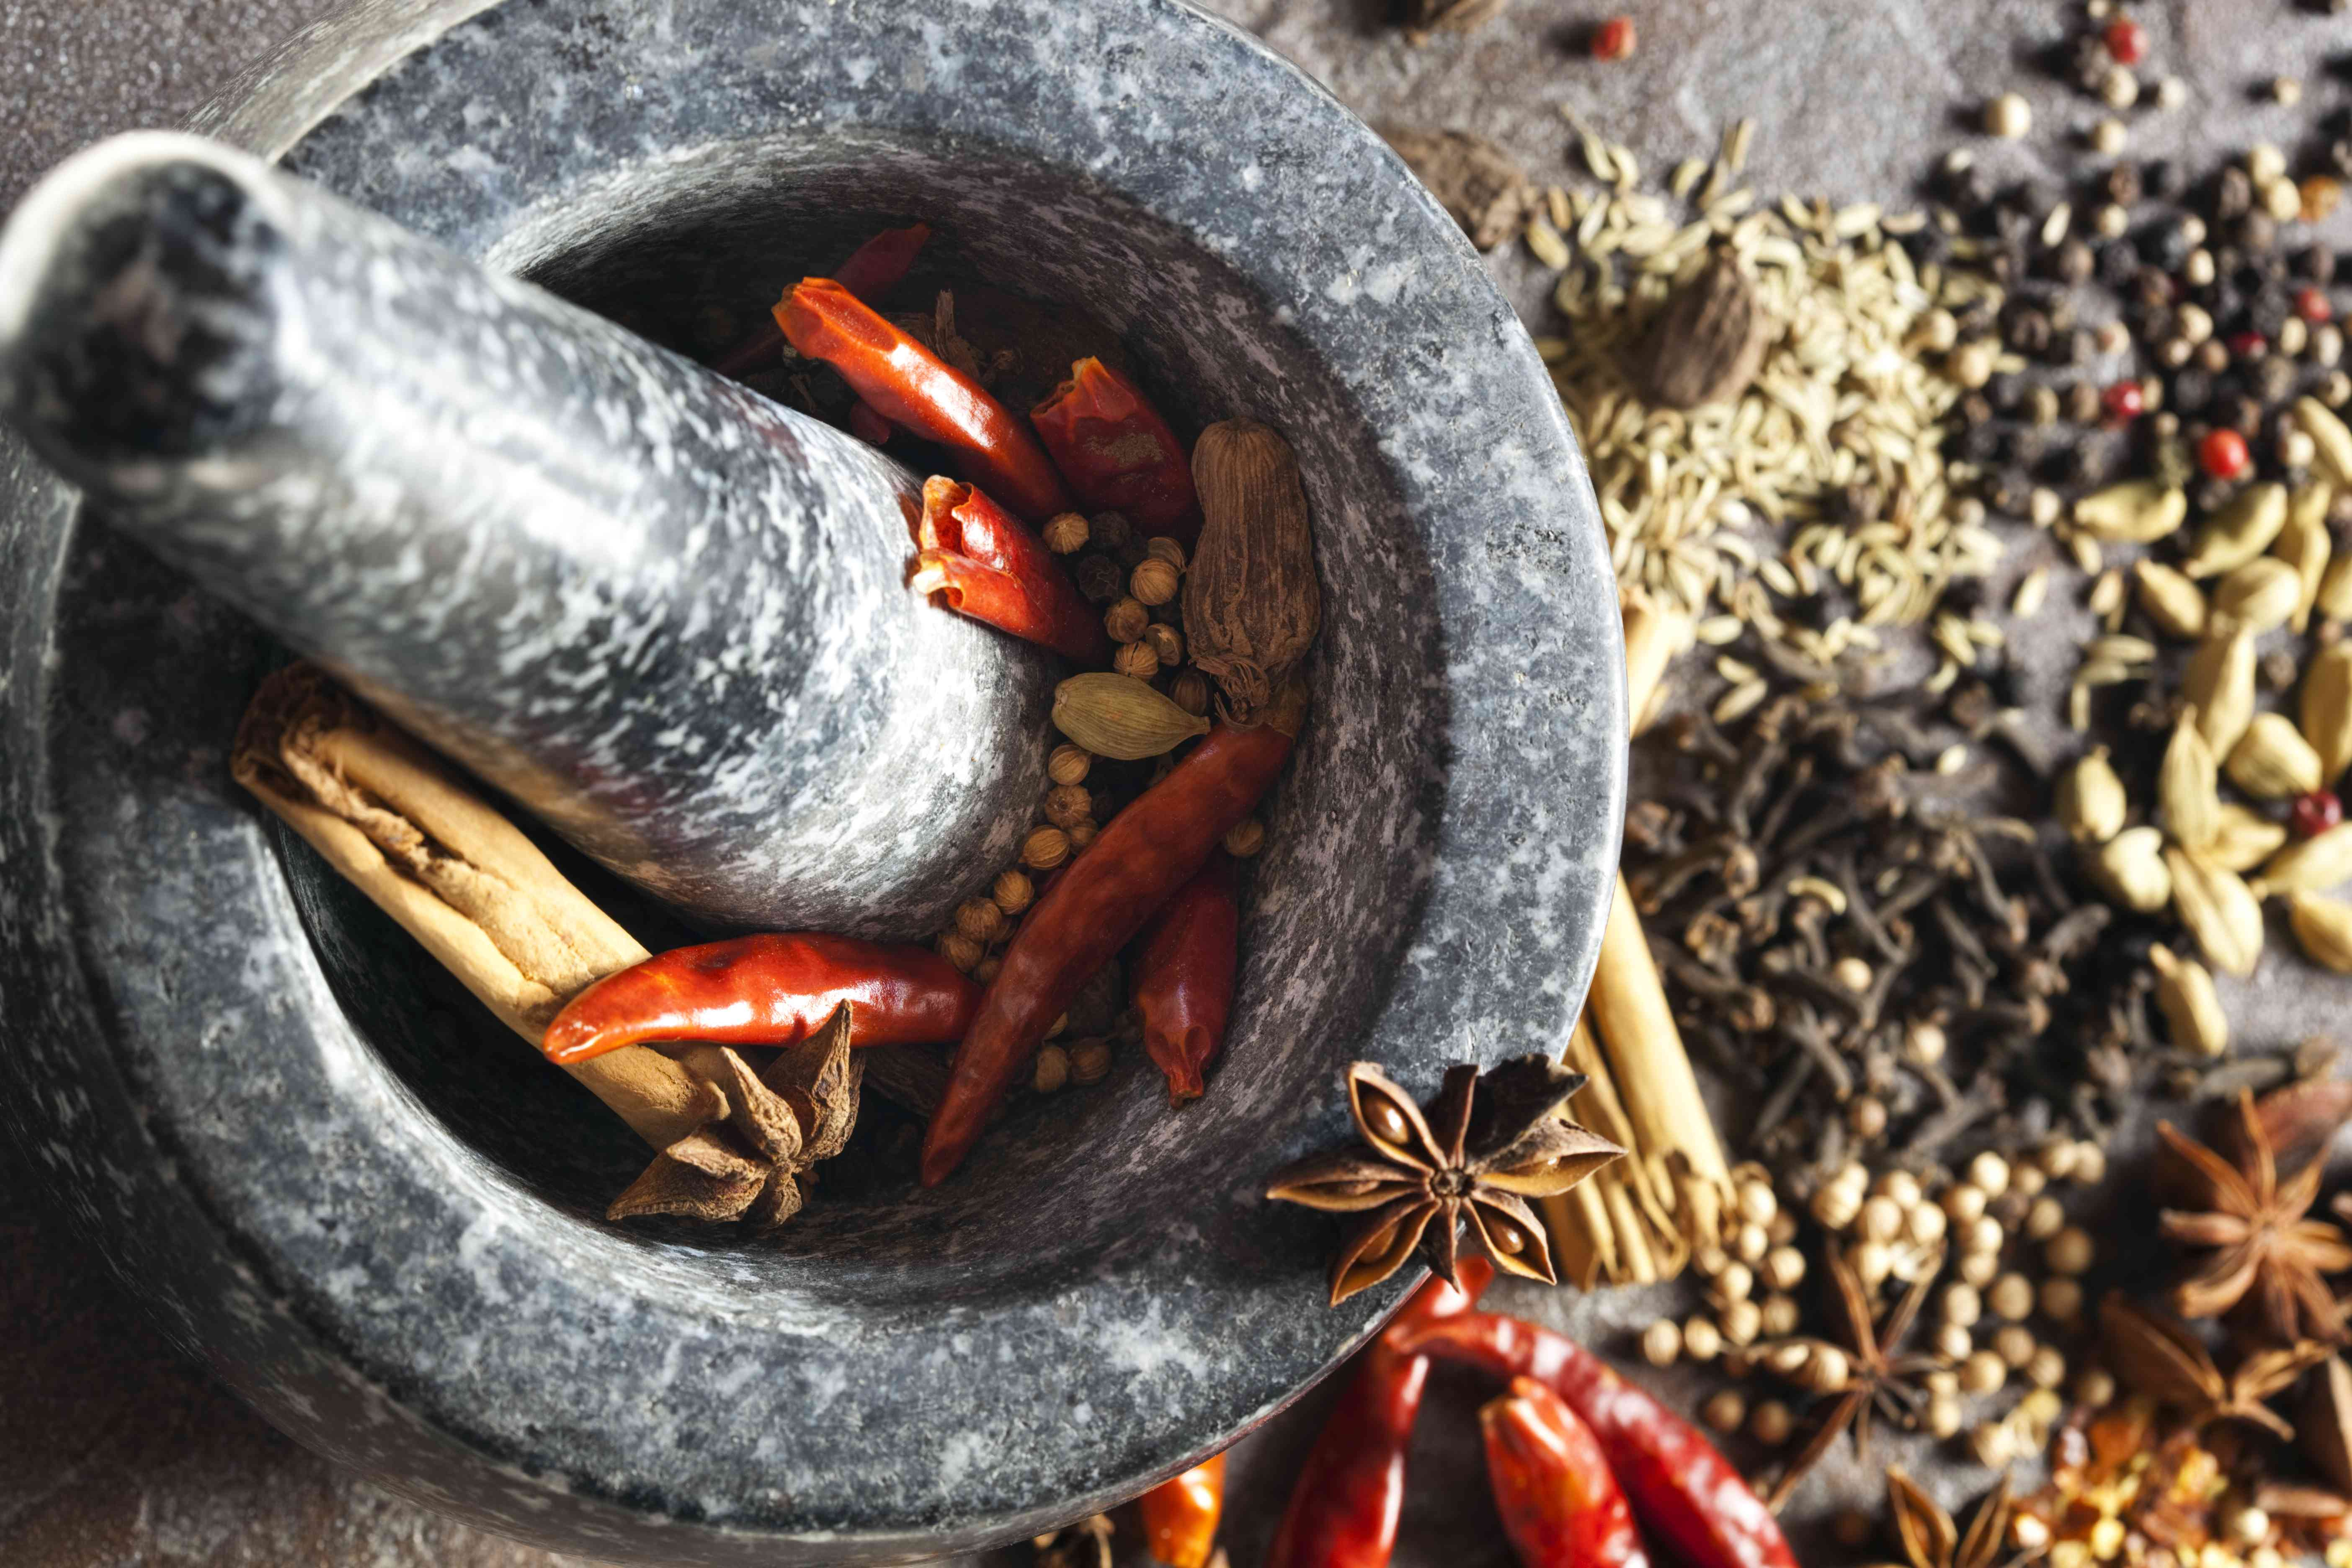 Mortar and pestle surrounded by various spices